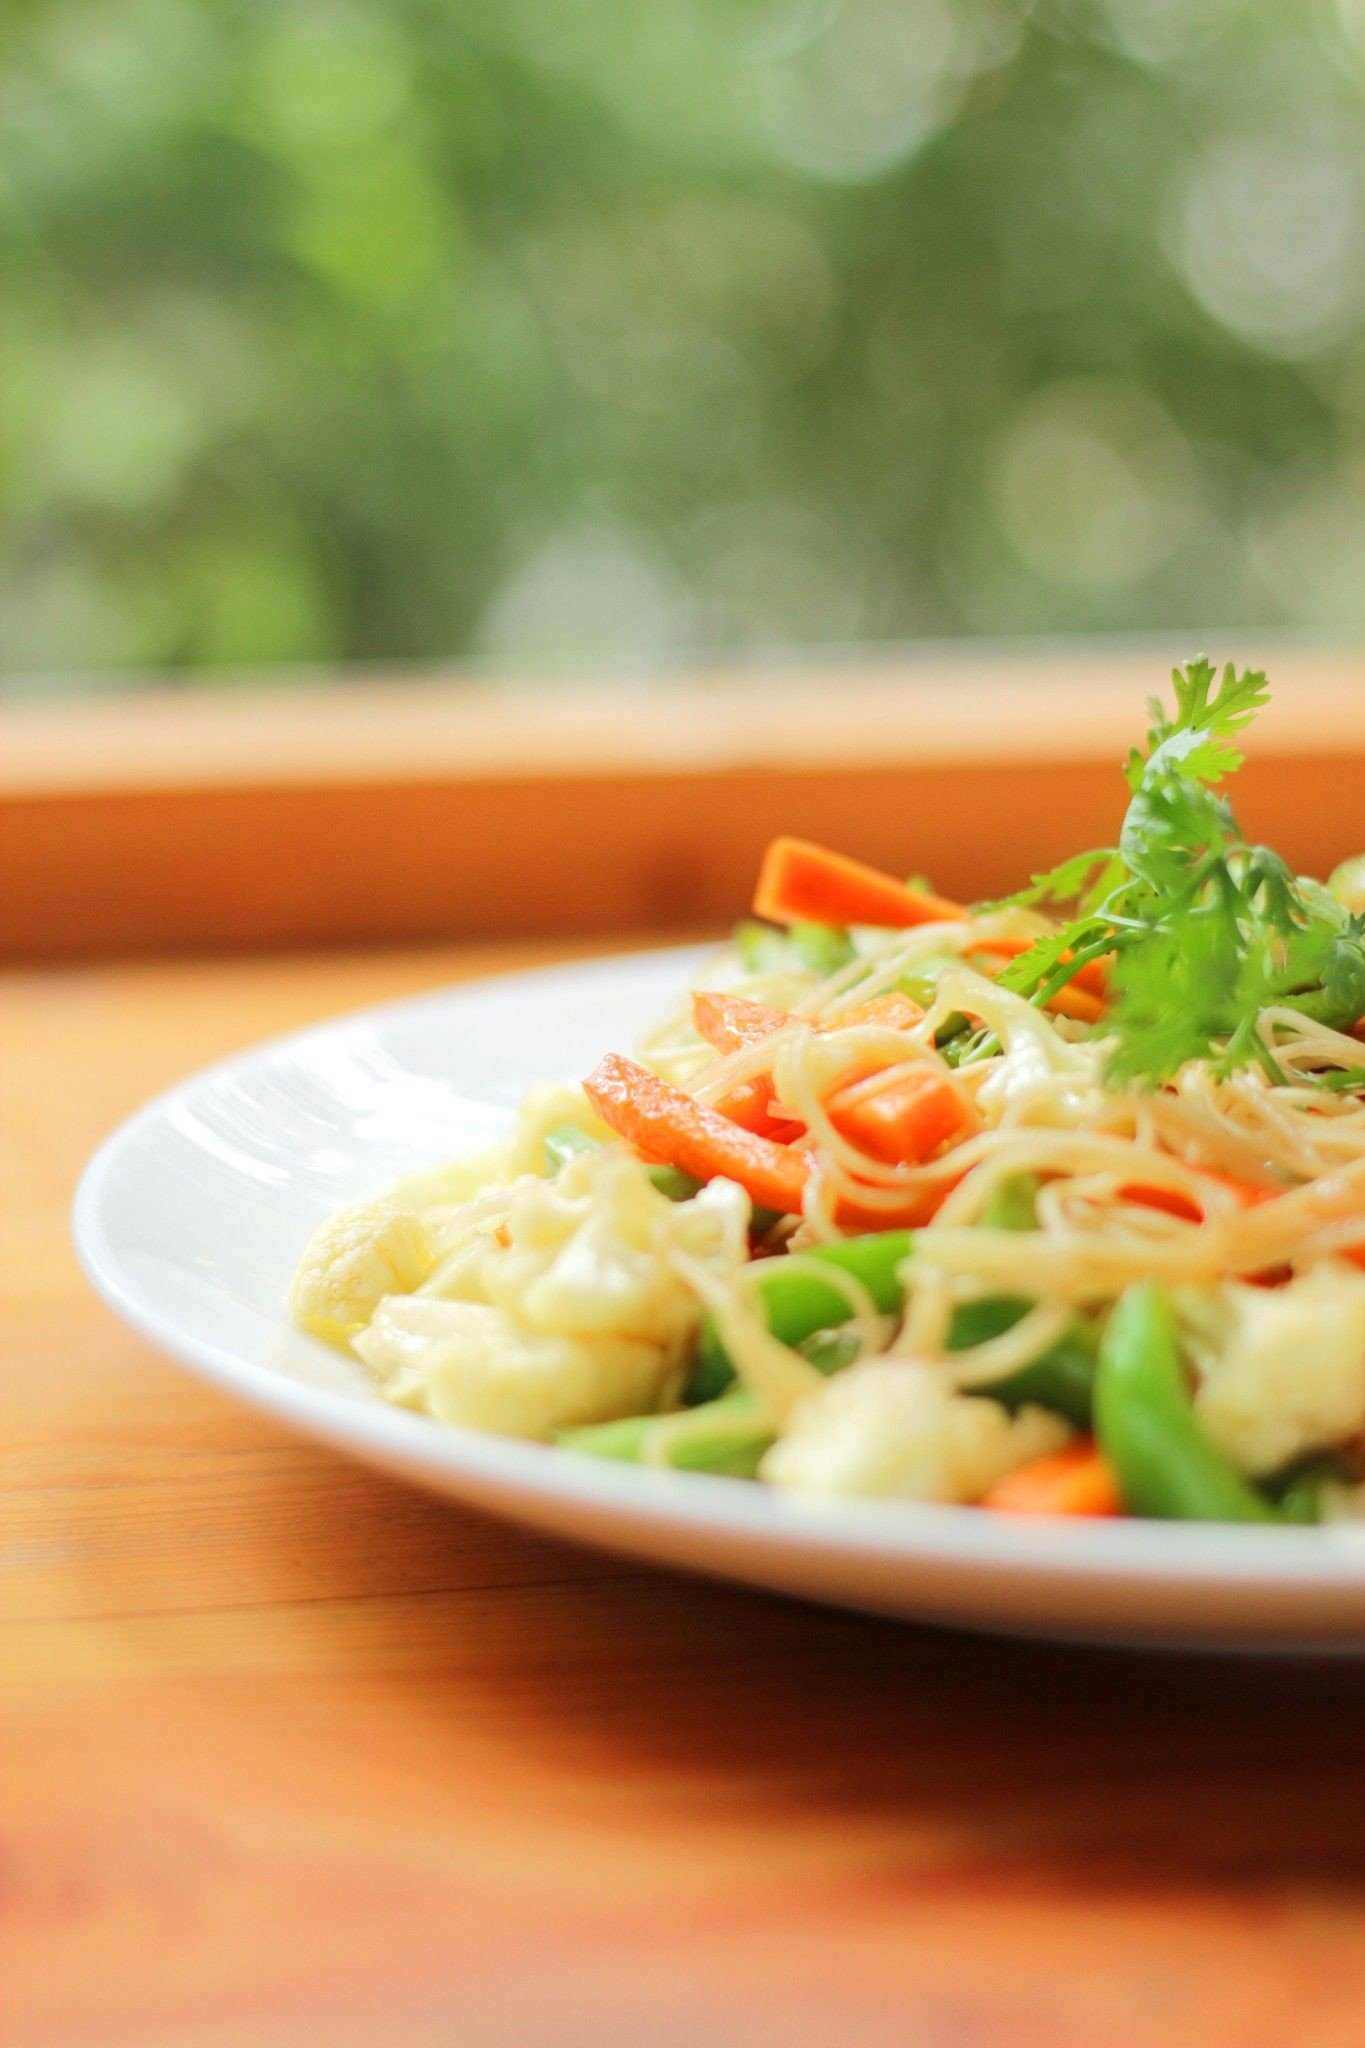 FRIED EGG NOODLE WITH VEGGIE